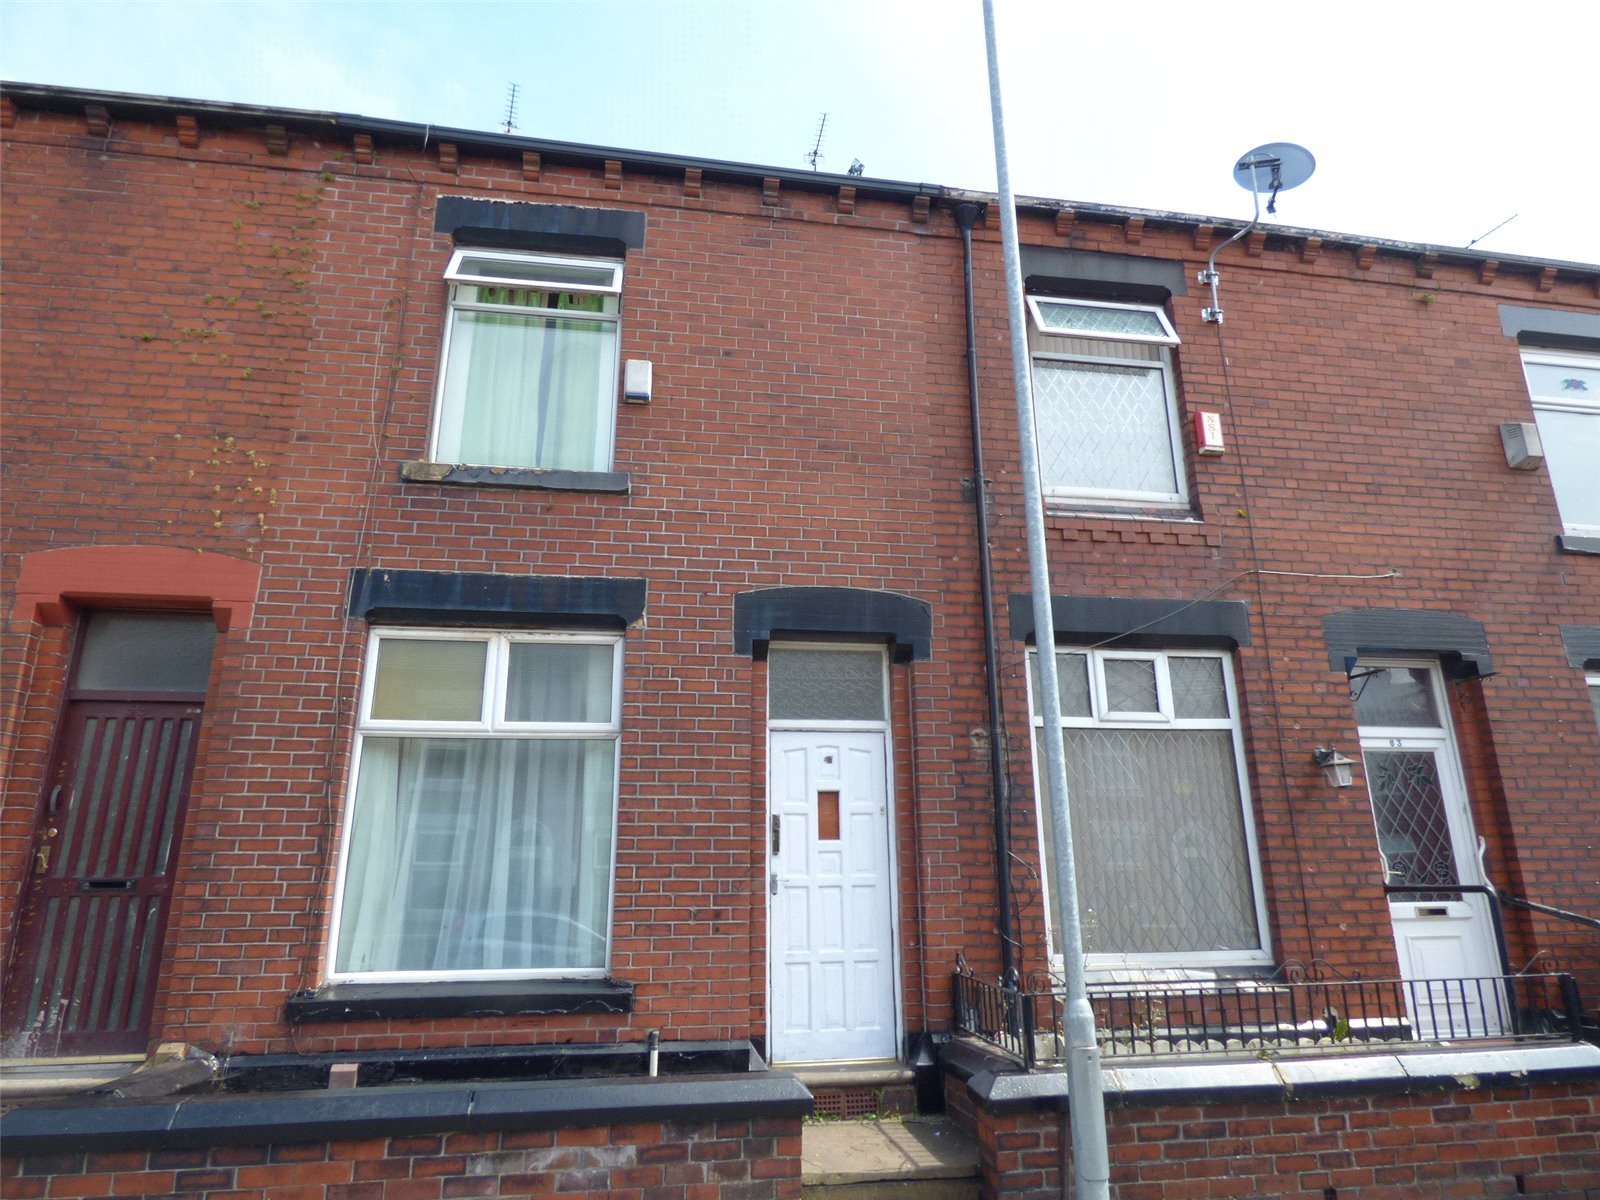 2 Bedrooms Terraced House for sale in Cranbrook Street, Clarksfield, Oldham, Greater Manchester, OL4